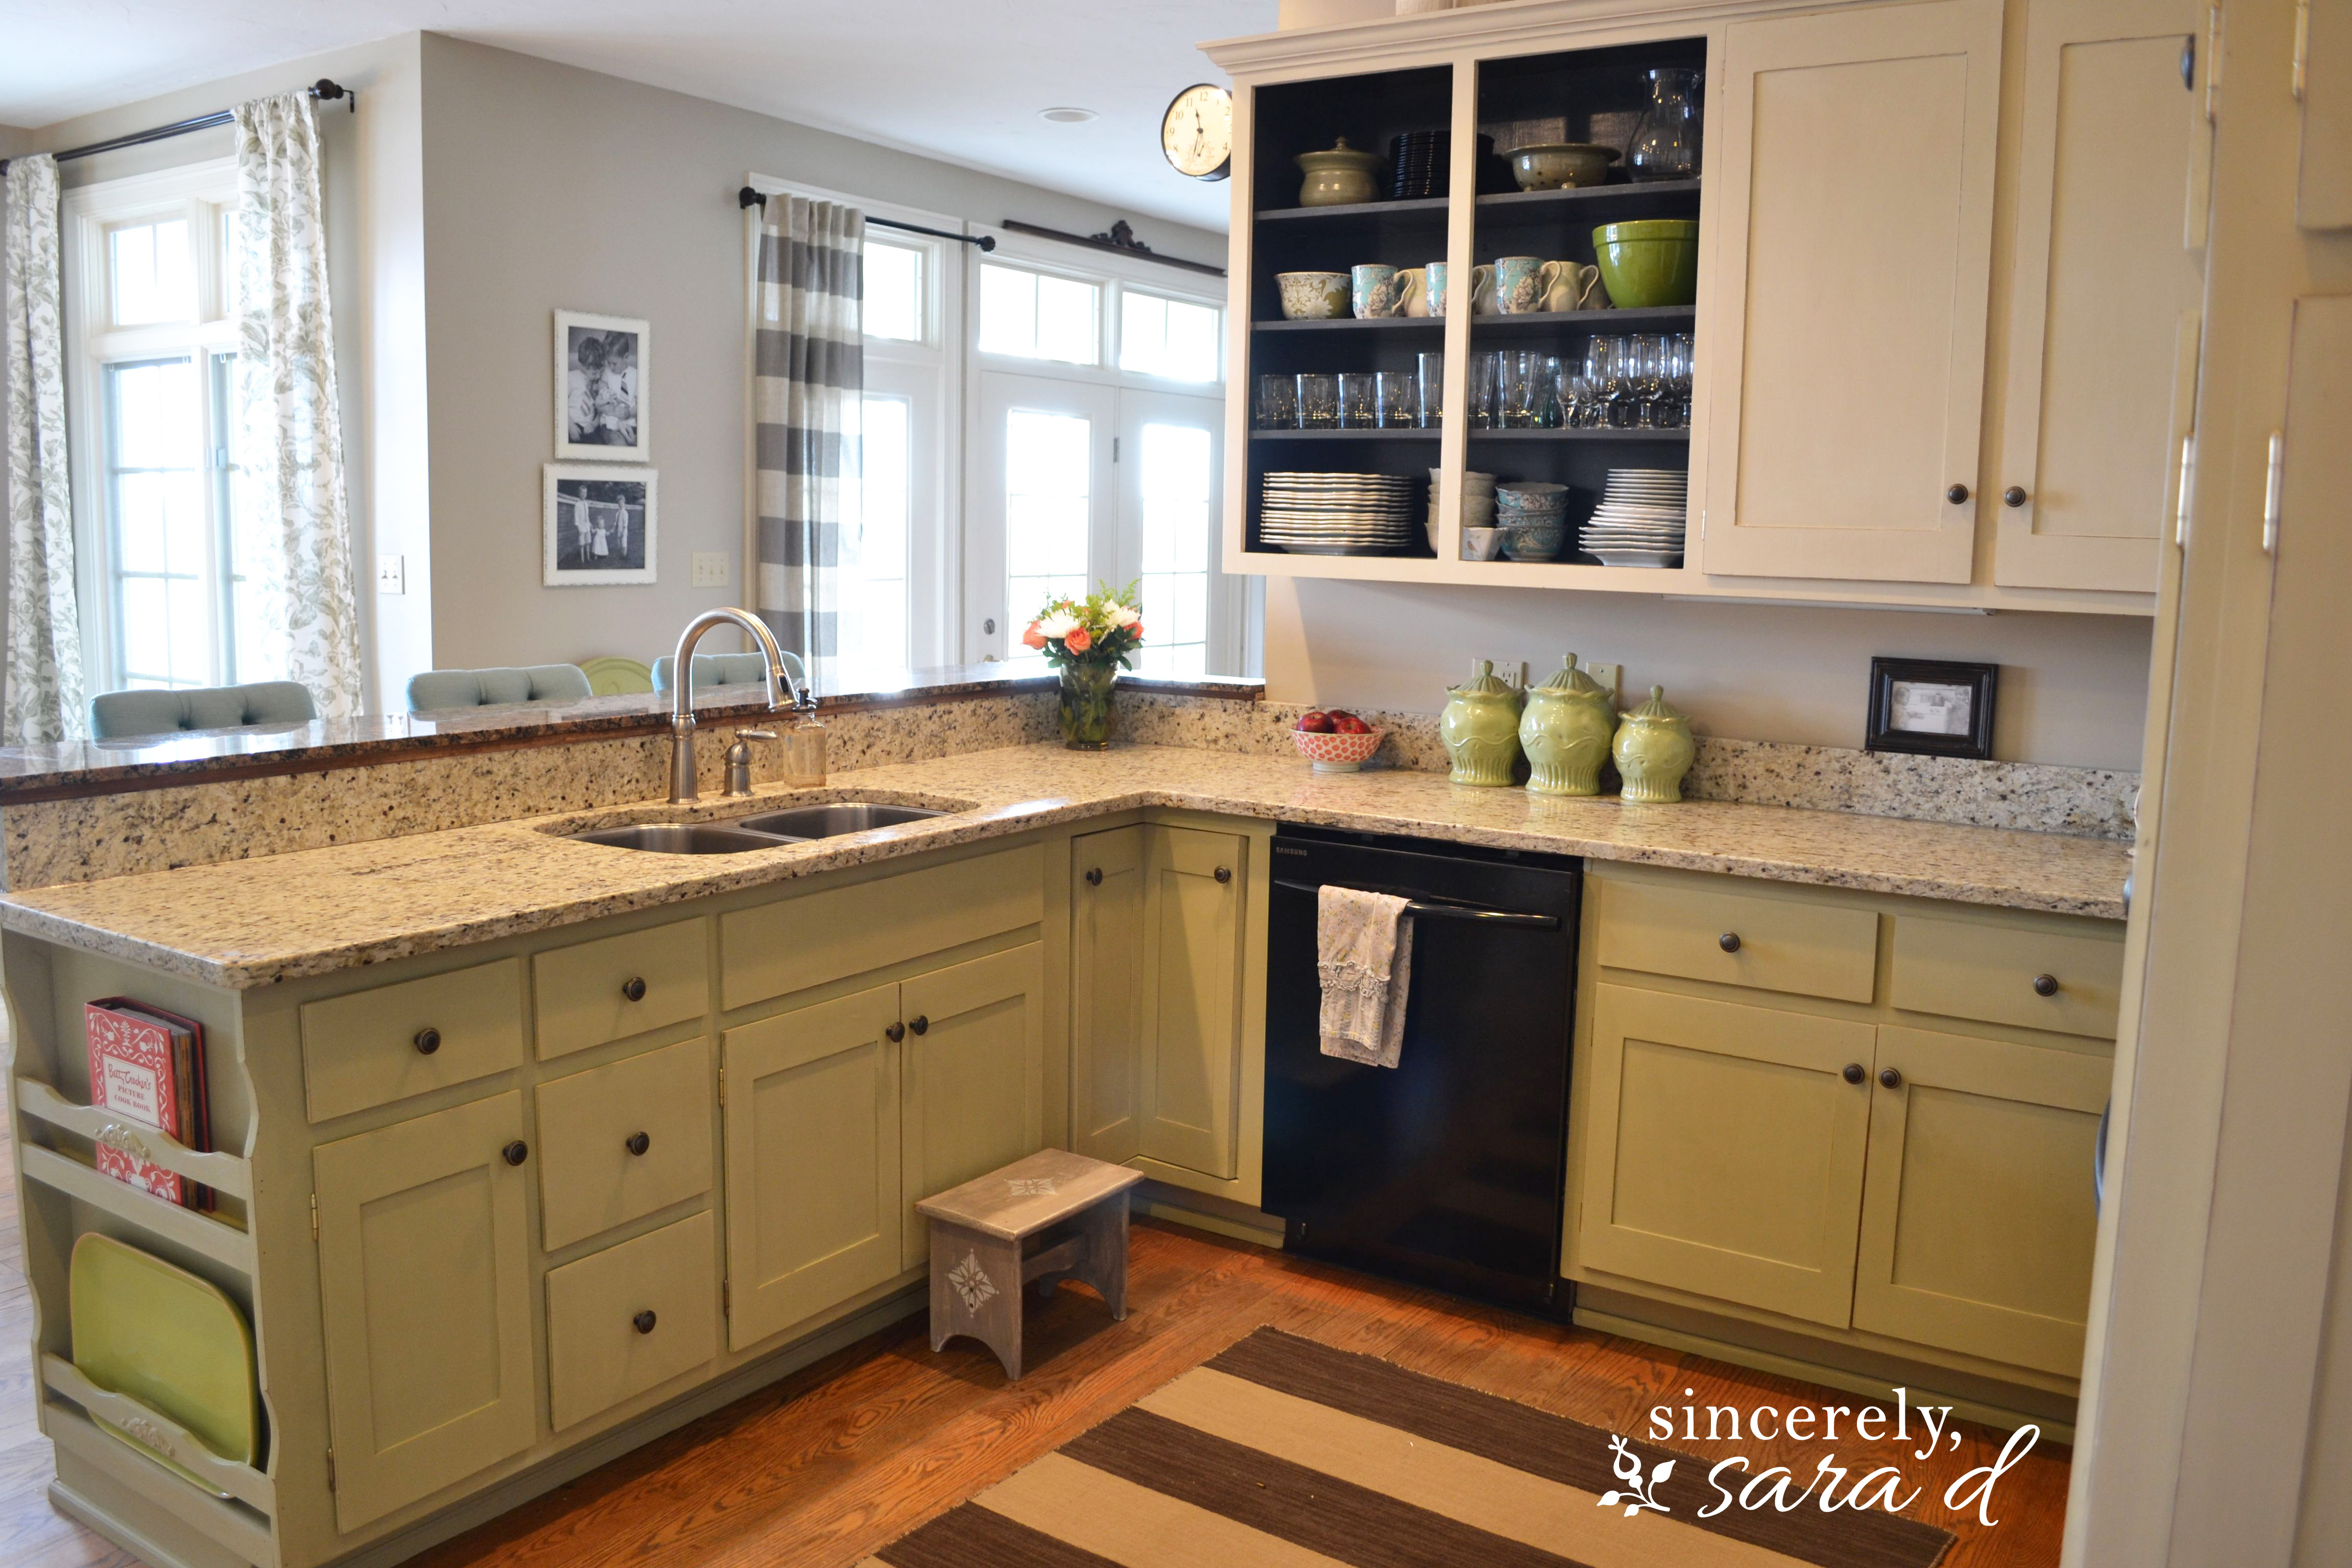 Painting kitchen cabinets with chalk paint update Pictures of painted cabinets